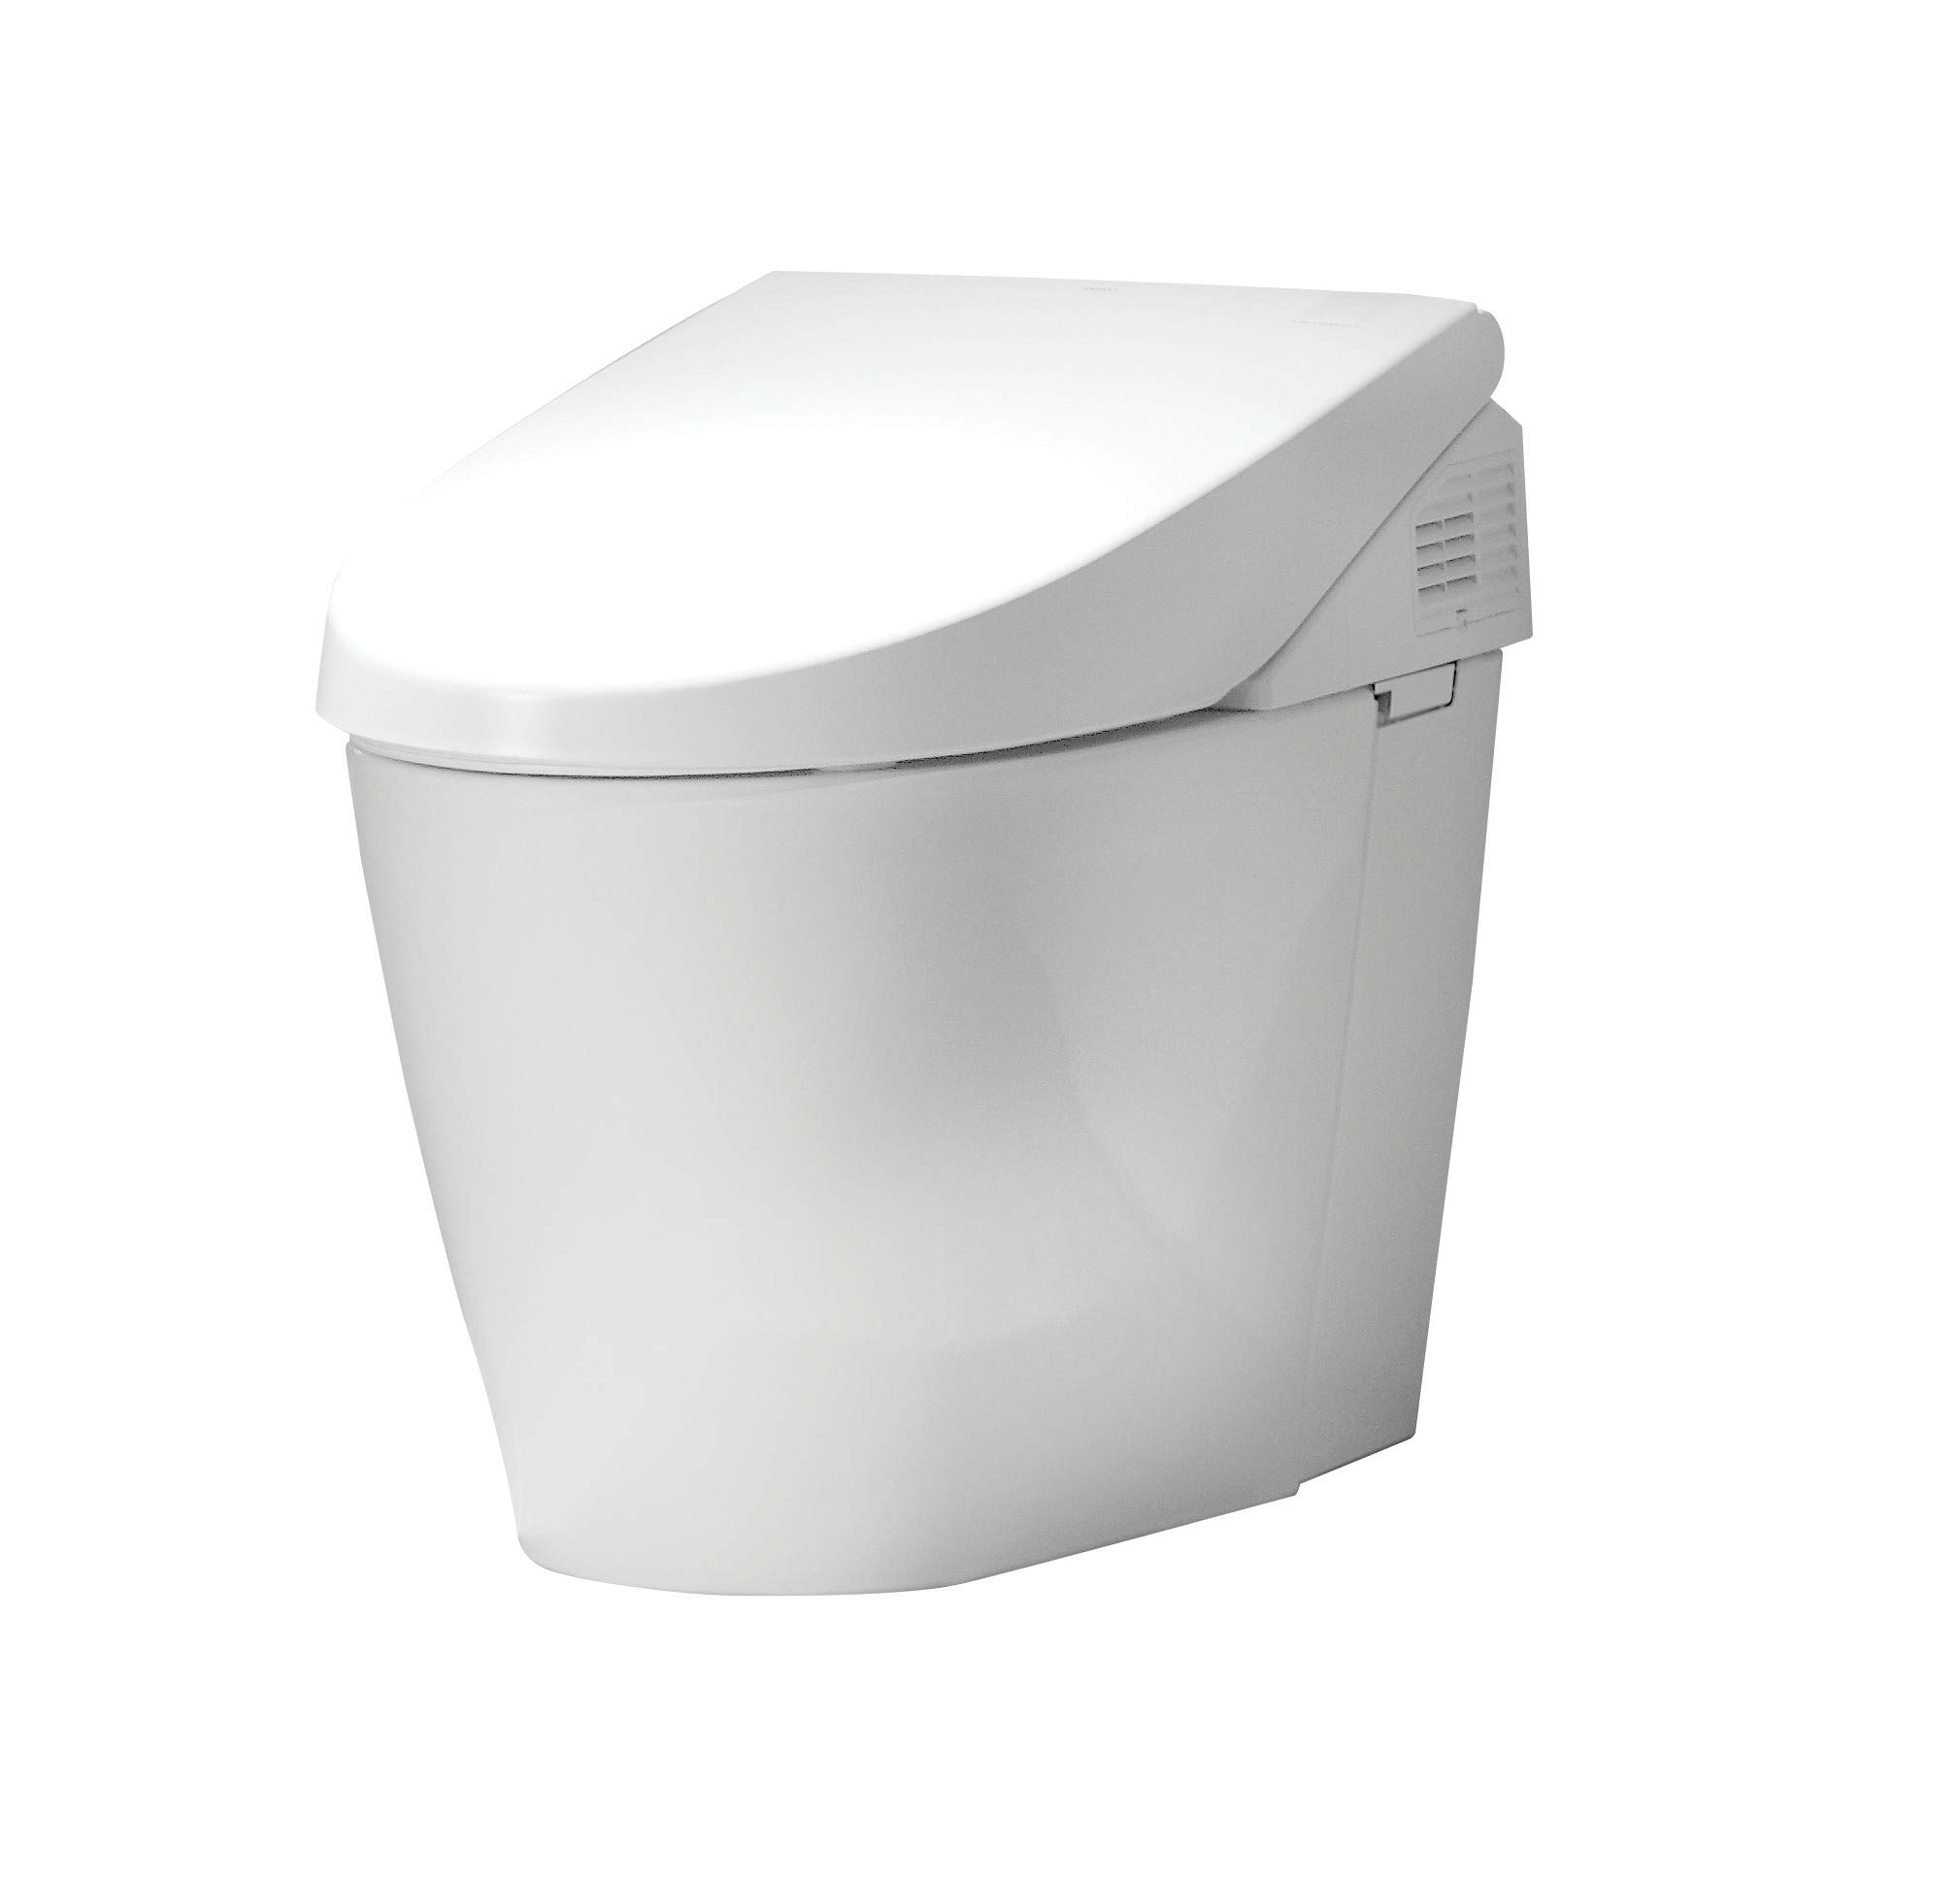 Best Toilets 2020.Toto Neorest 550h Review Best Toilets 2020 Our Top Picks